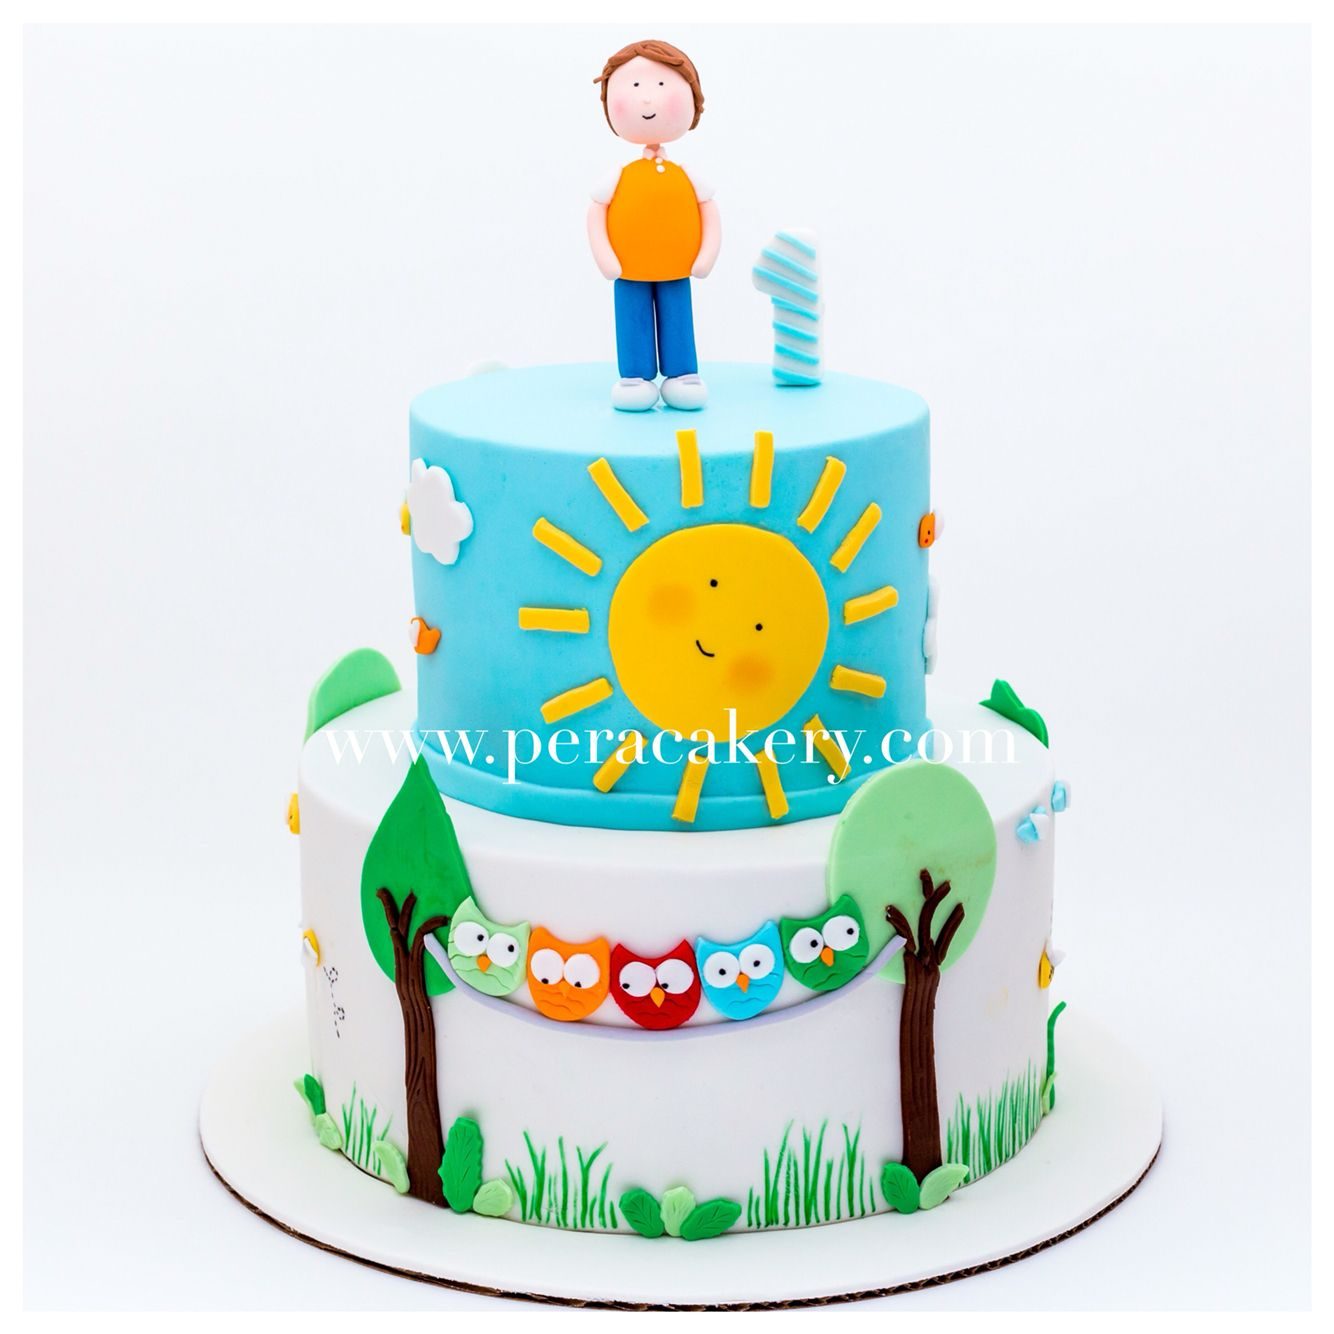 A nature lover cake